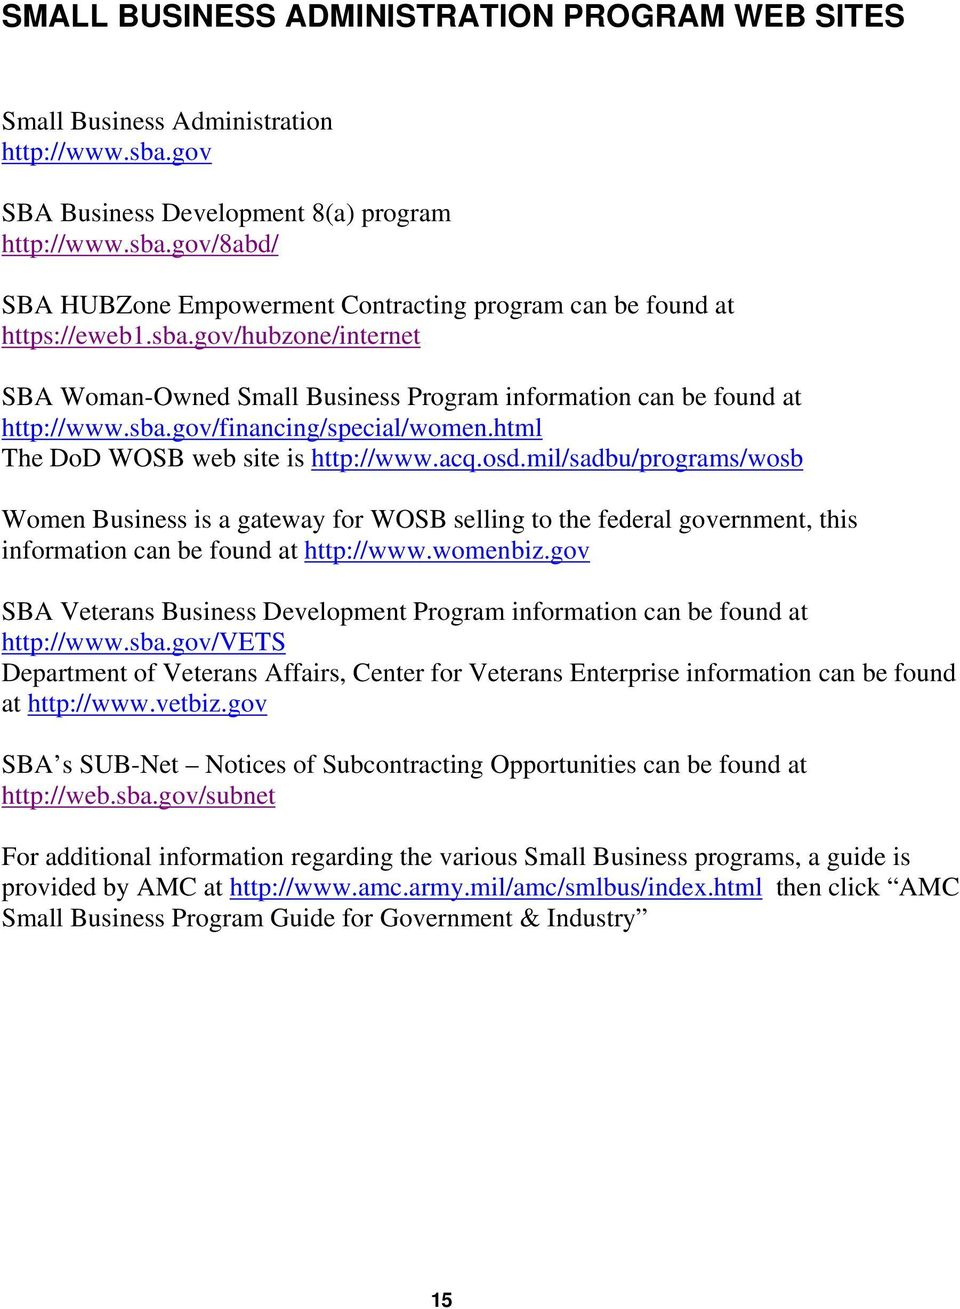 mil/sadbu/programs/wosb Women Business is a gateway for WOSB selling to the federal government, this information can be found at http://www.womenbiz.